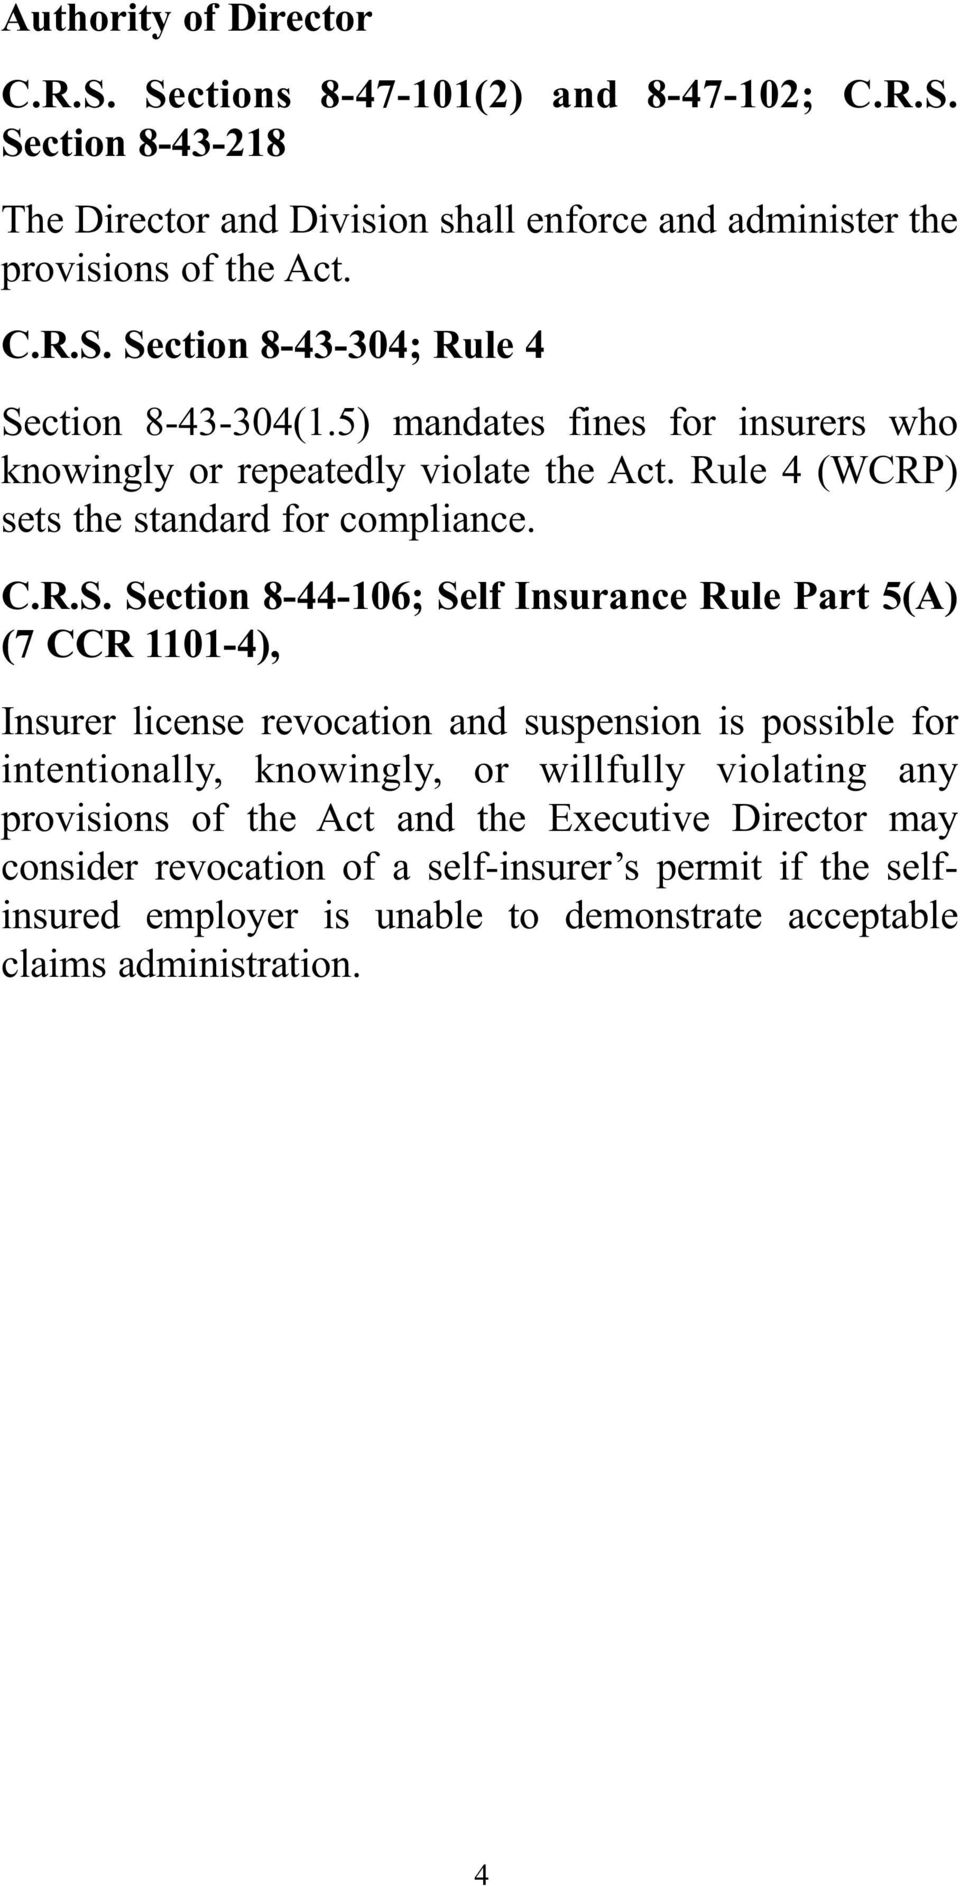 Section 8-44-106; Self Insurance Rule Part 5(A) (7 CCR 1101-4), Insurer license revocation and suspension is possible for intentionally, knowingly, or willfully violating any